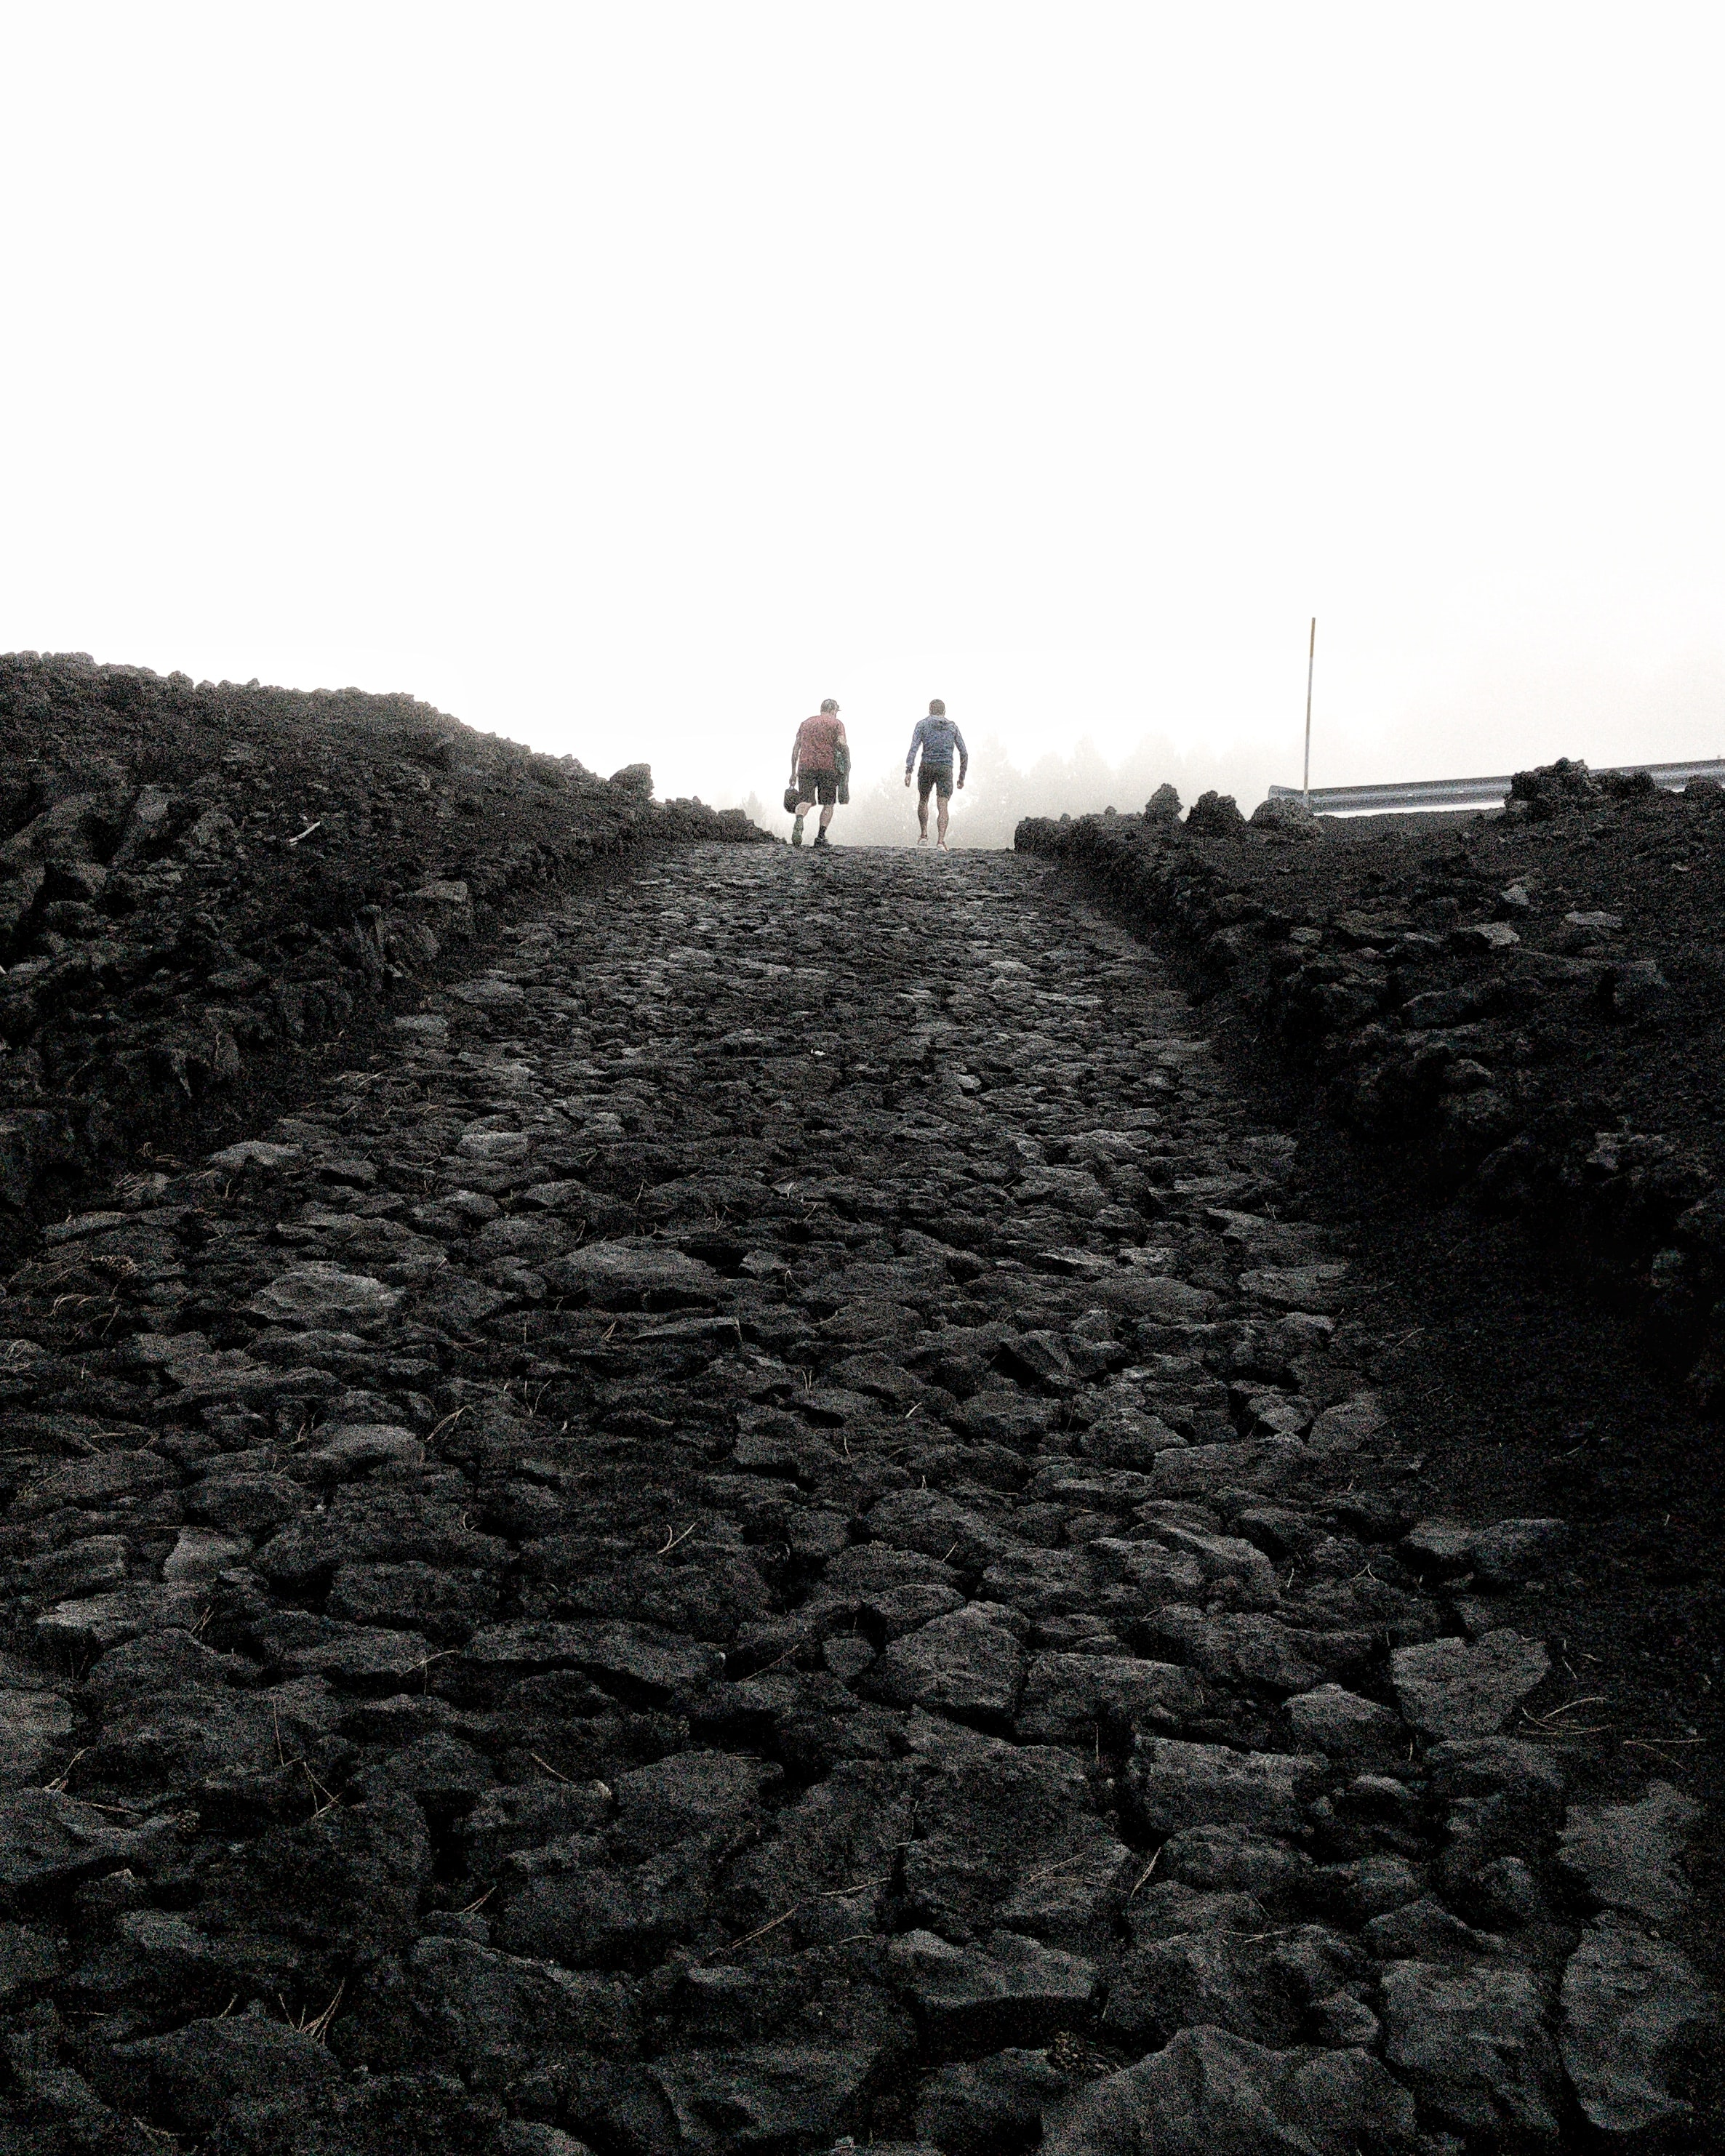 photo of two persons walking on rocky pathway